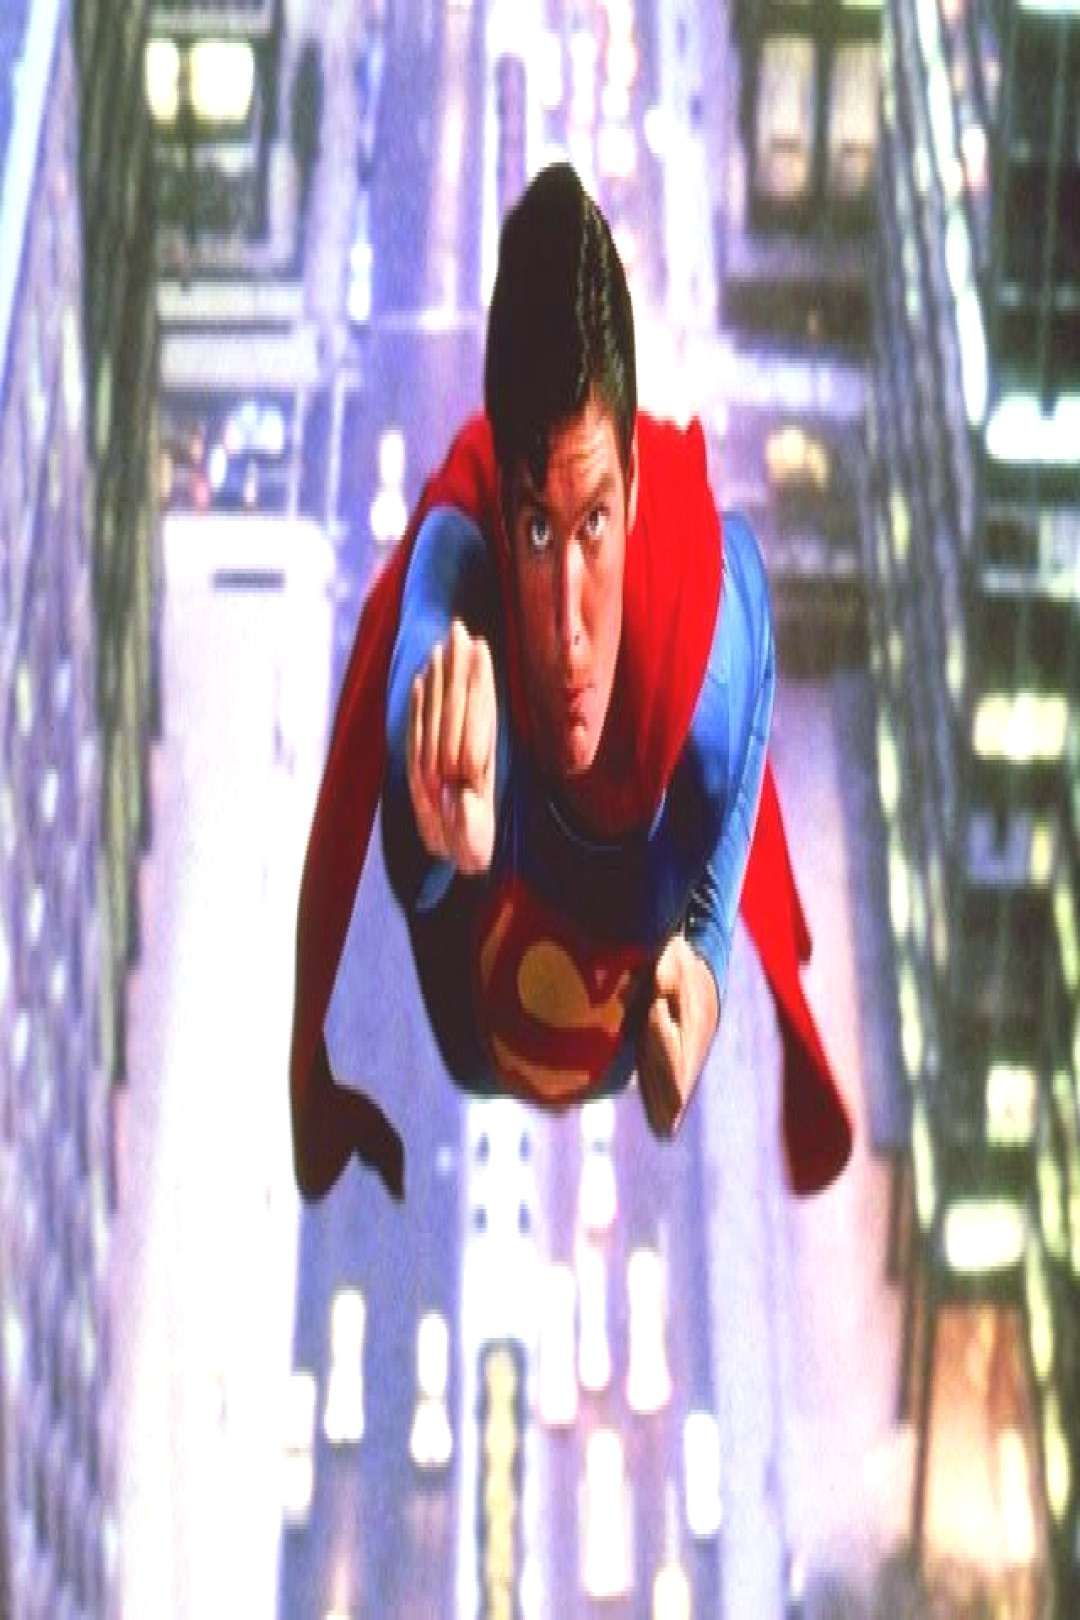 marlon brando superman Actor - -You can find Superman and more on our rlon brando superman Actor -